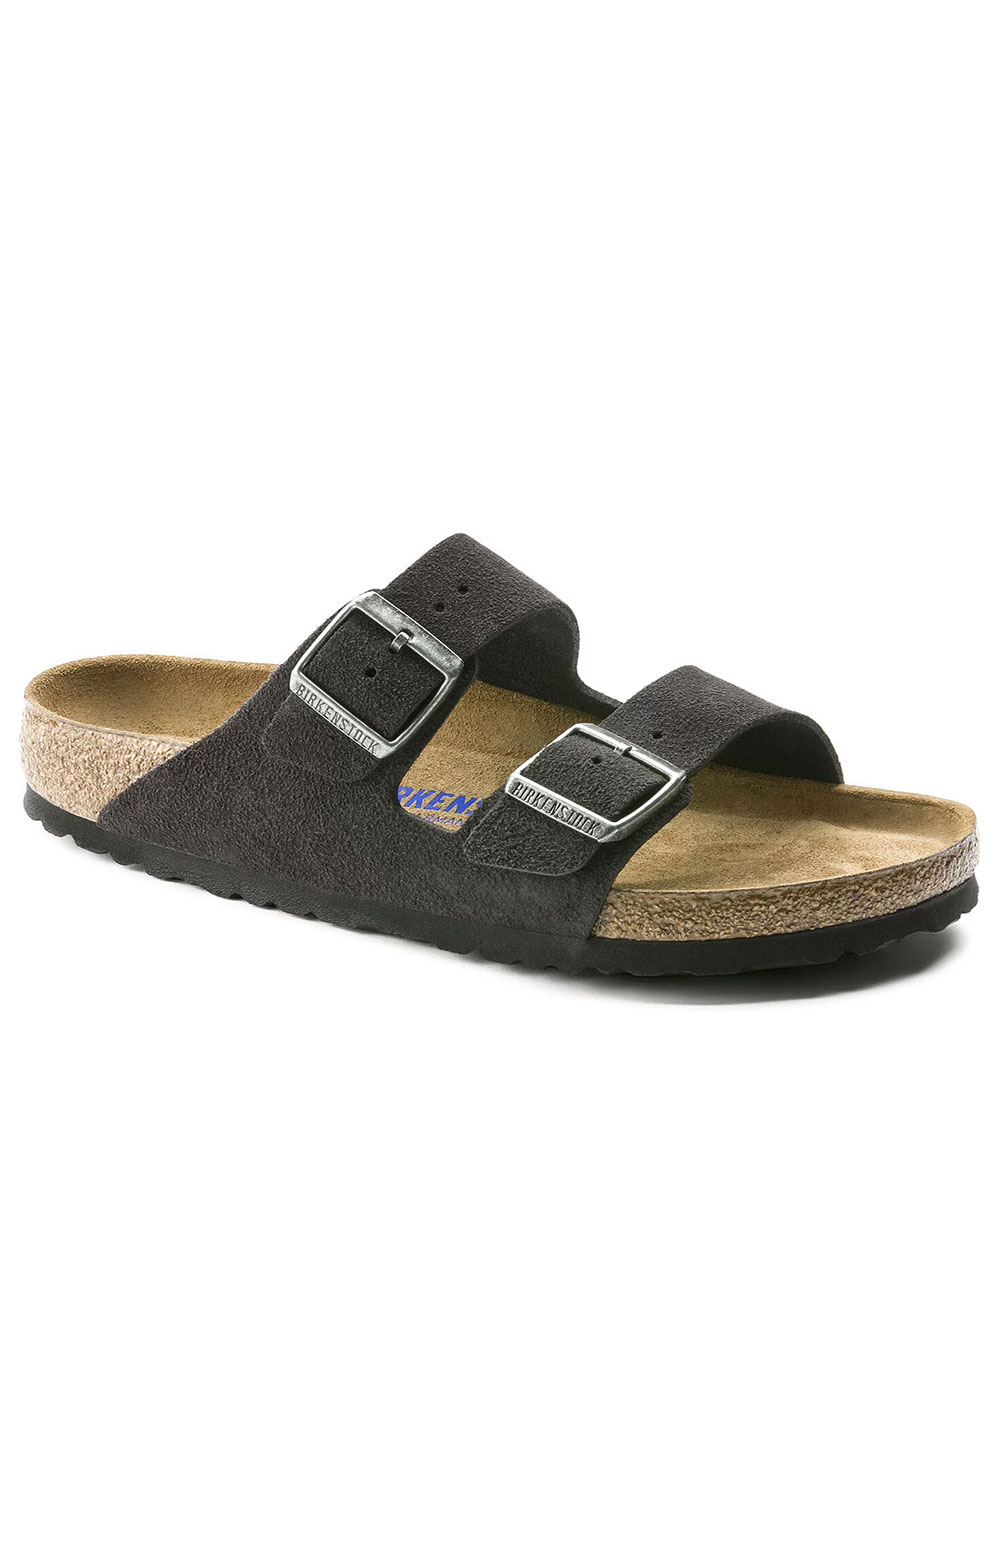 (0552321) Arizona Sandals - Velvet Grey  5